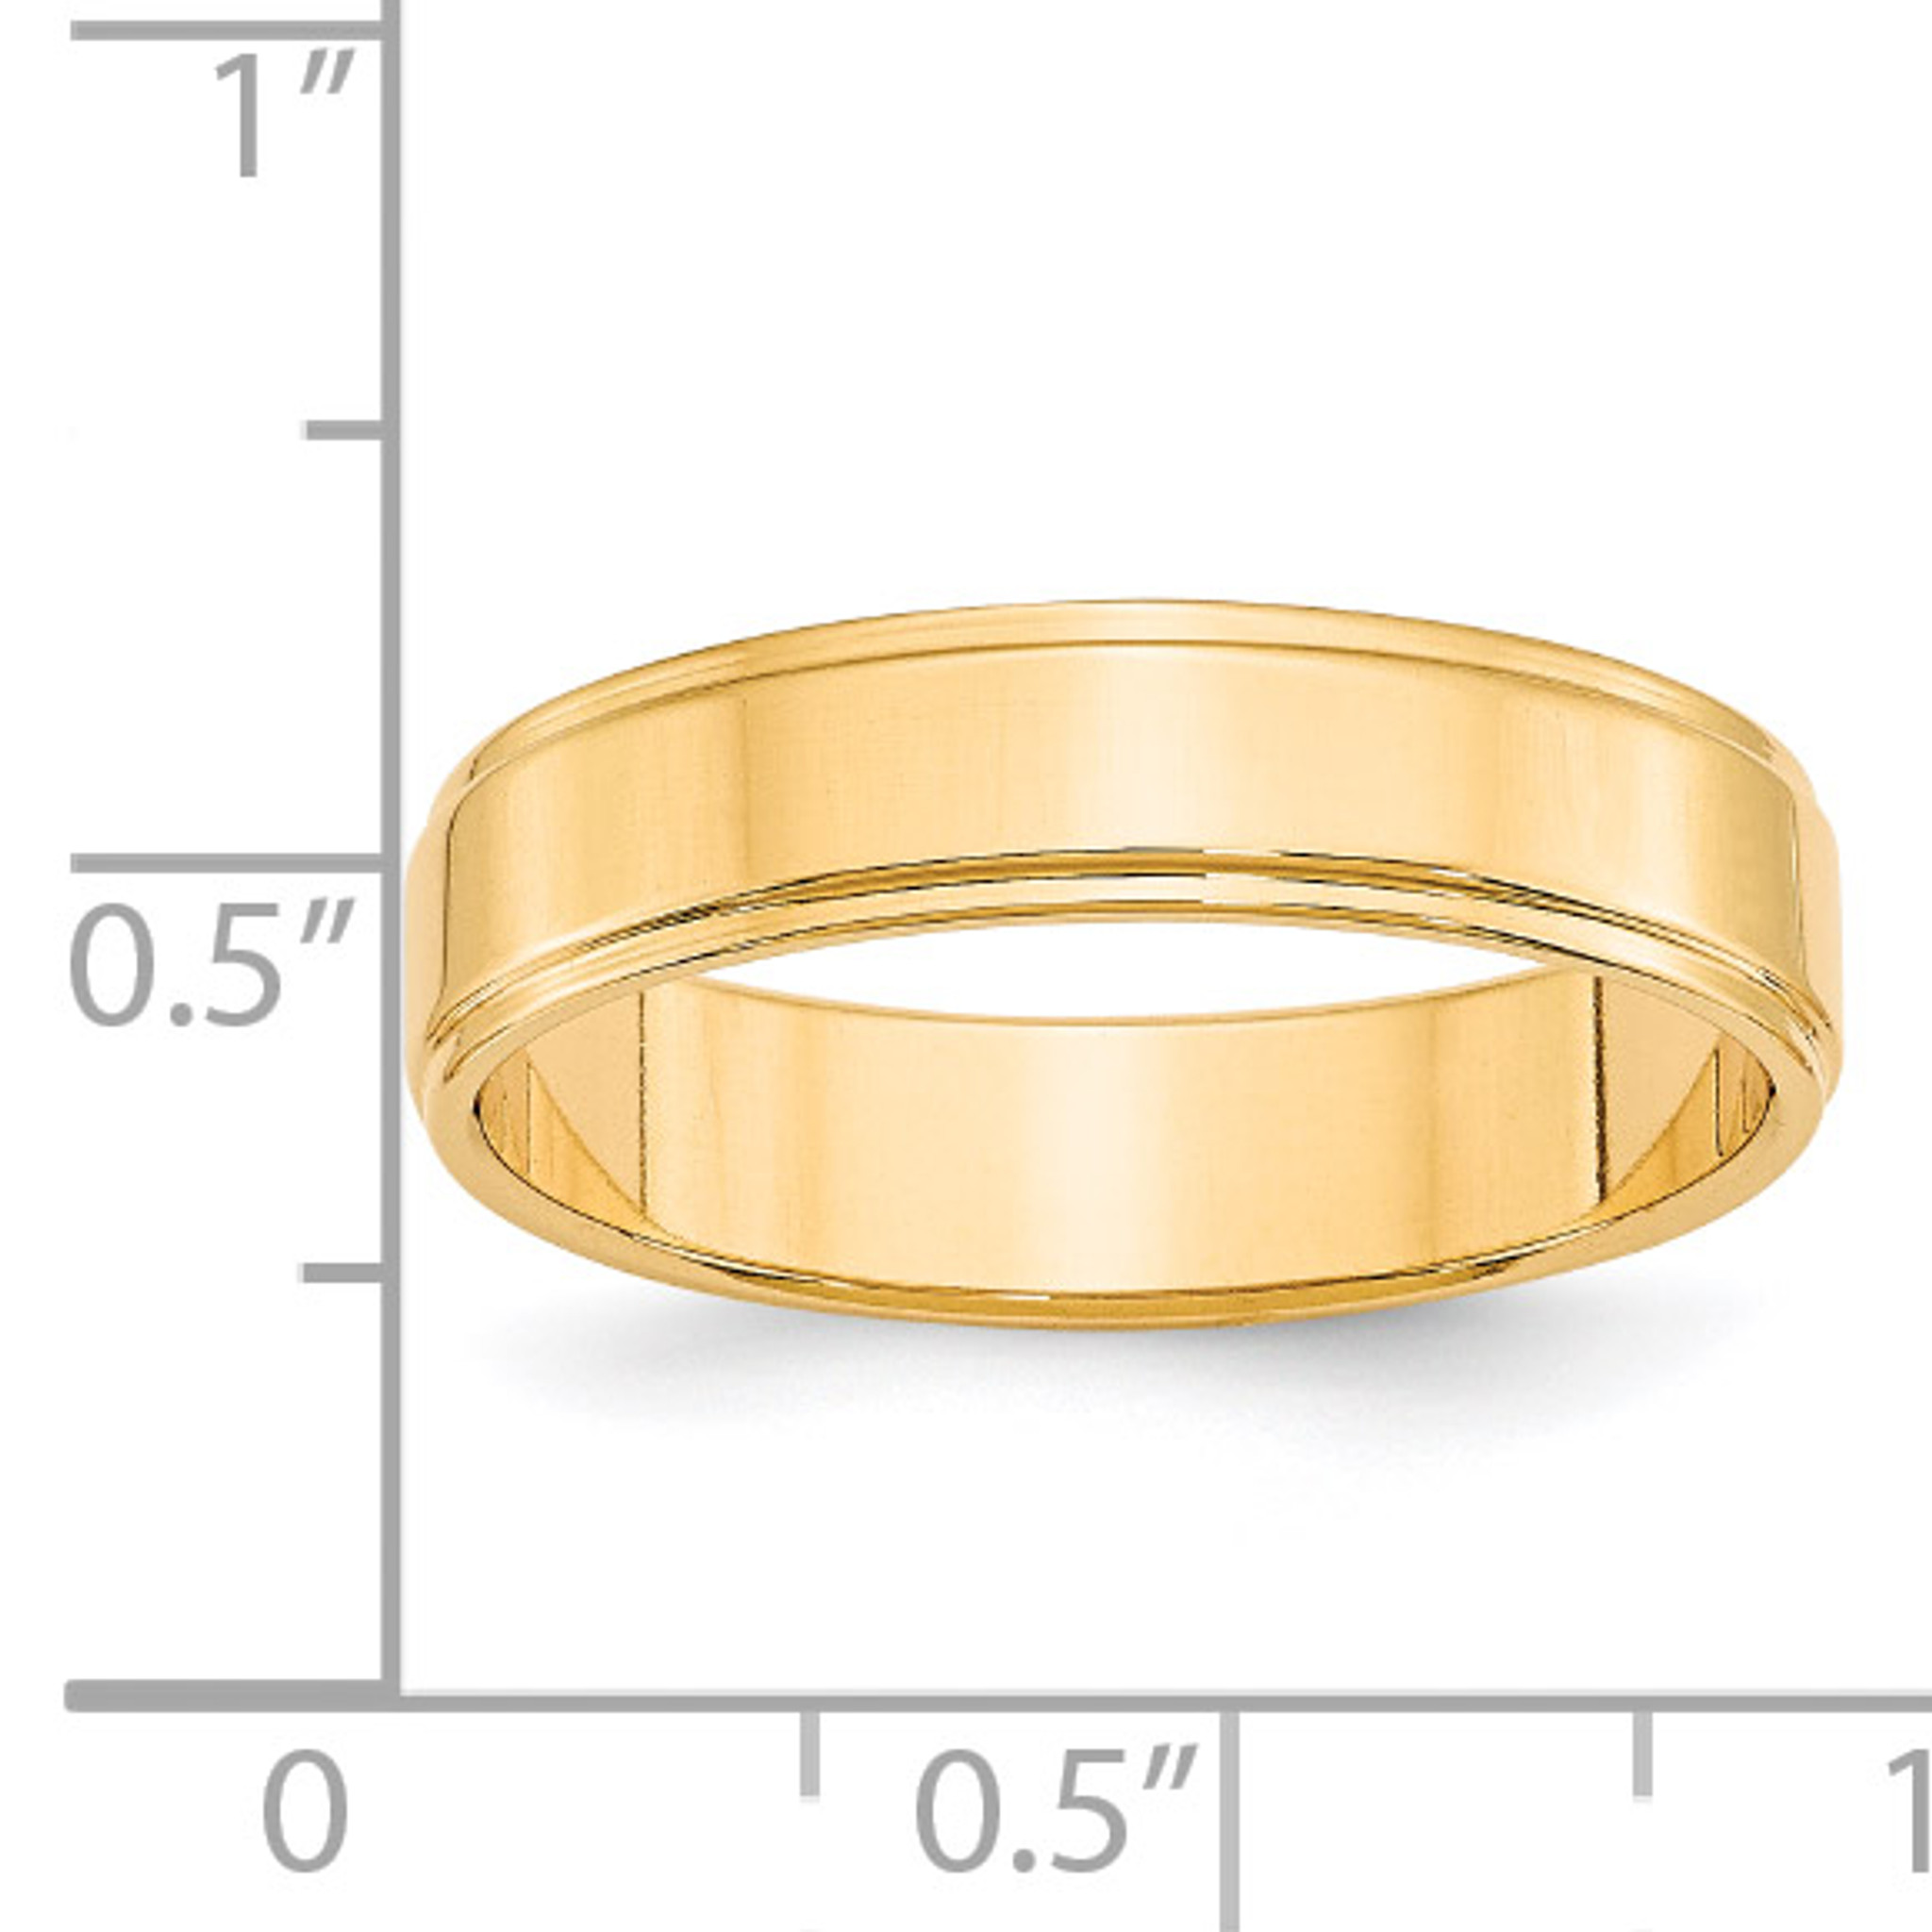 14K Yellow Gold 5mm Flat with Step Edge Band Ring